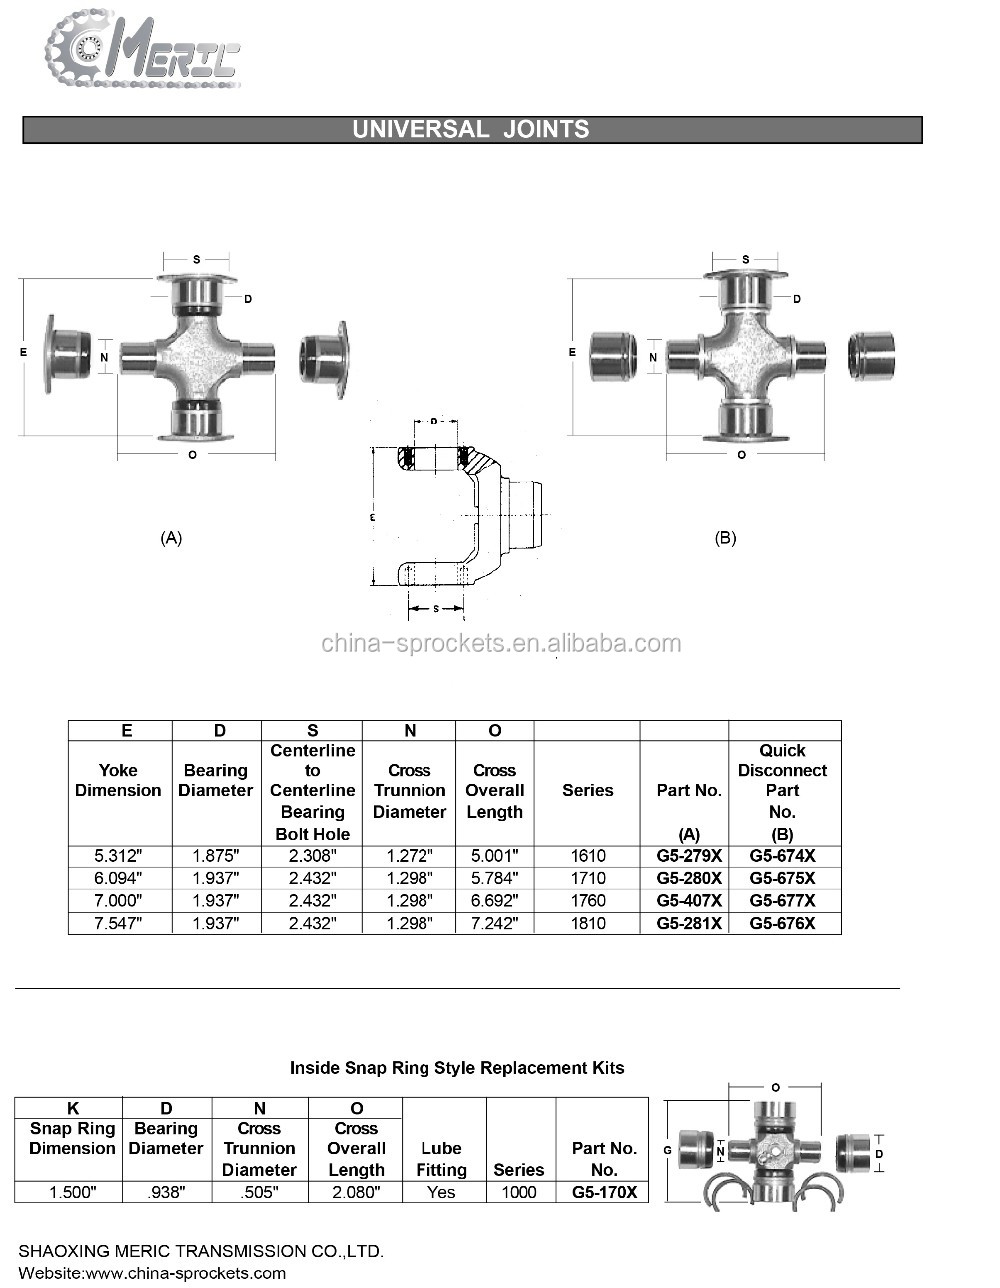 Universal Joint Cross Gmb Universal Joint For 419-20-12621 - Buy Universal  Joint,Universal Cross Joint,Gmb Universal Joint Product on Alibaba com